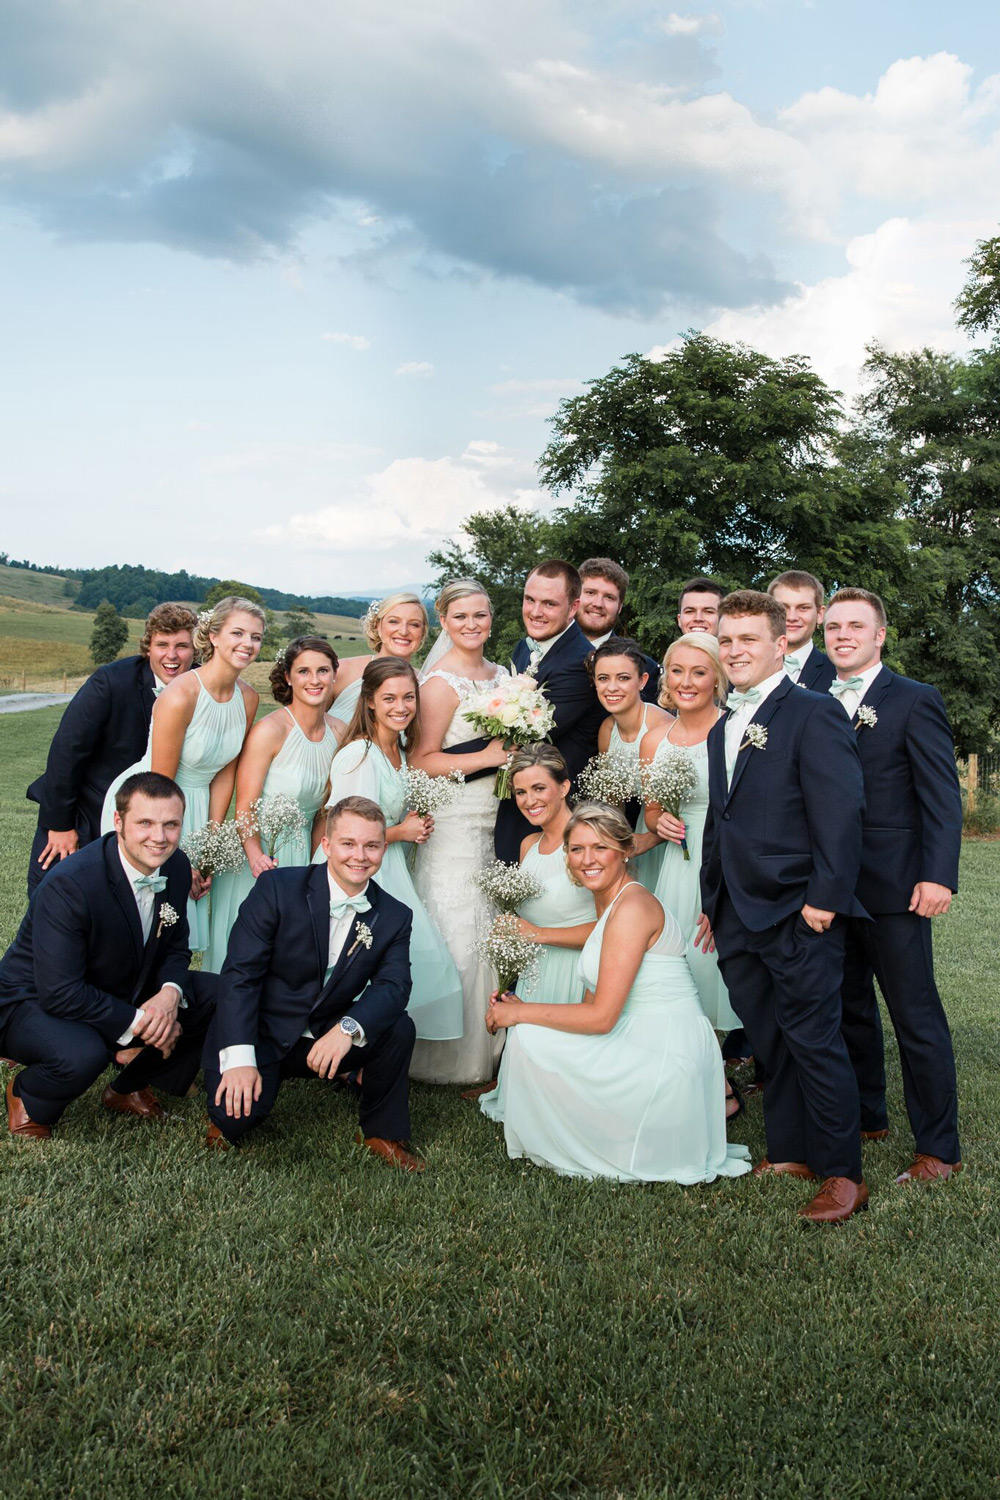 bridal_party_outdoors2.jpg